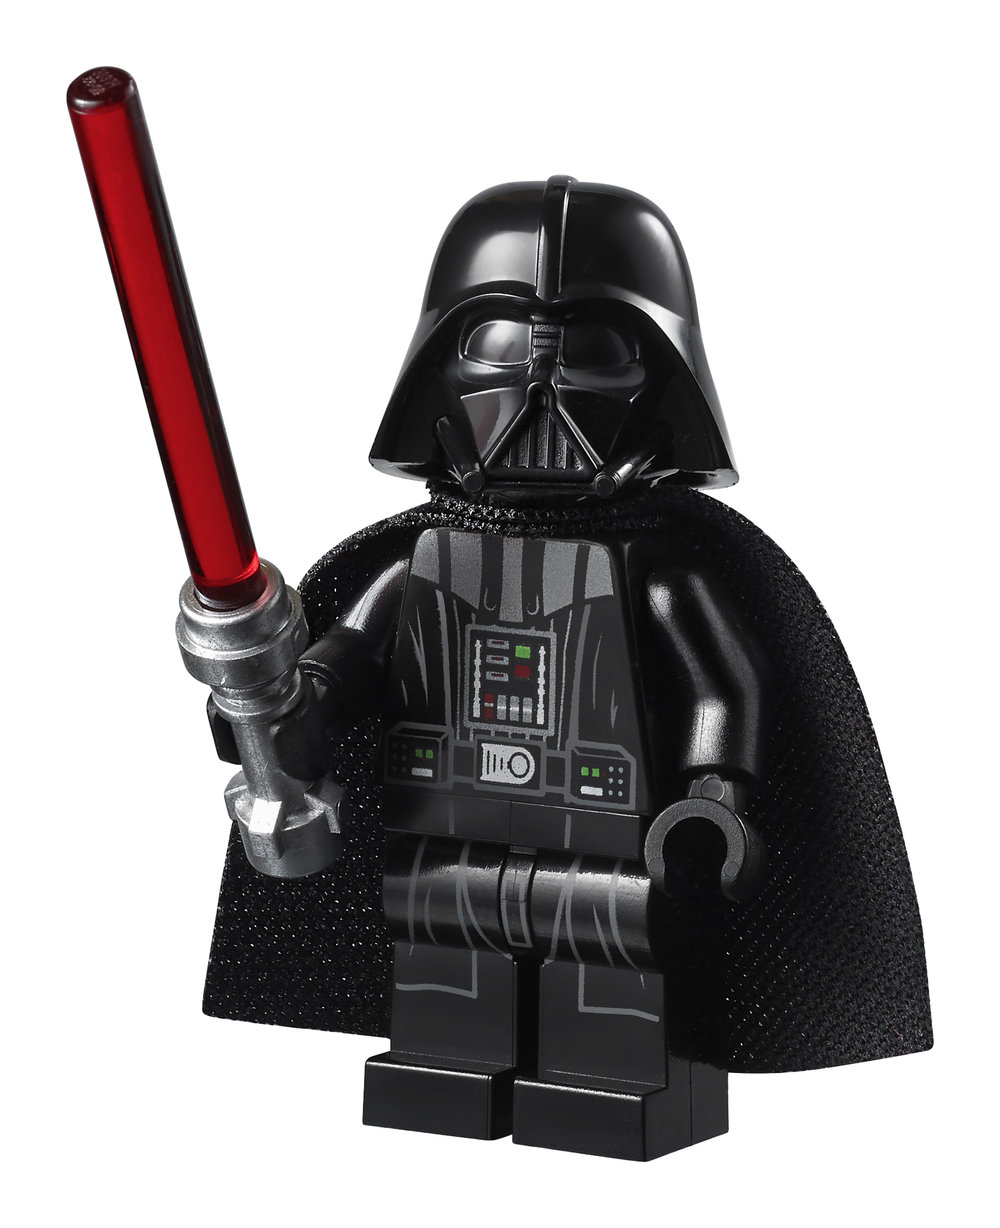 75222_Top_Panel_Minifigure_15.jpg